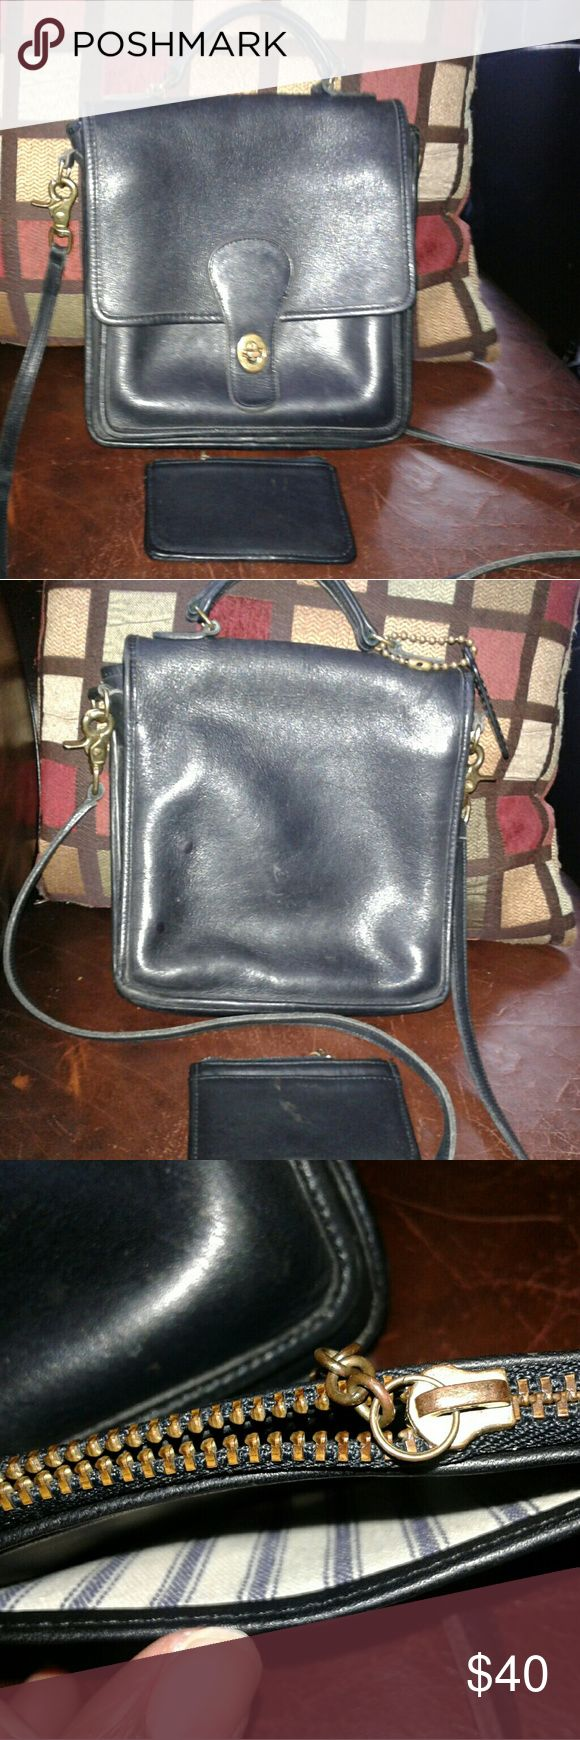 Vintage Coach Satchel Crossbody Bag and Wallet Both of these are black leather vintage items. The wallet is in good preowned condition. The purse has some red stains inside, see pics. The brass hardware has some green tarnishing and need a good cleaning. Coach Bags